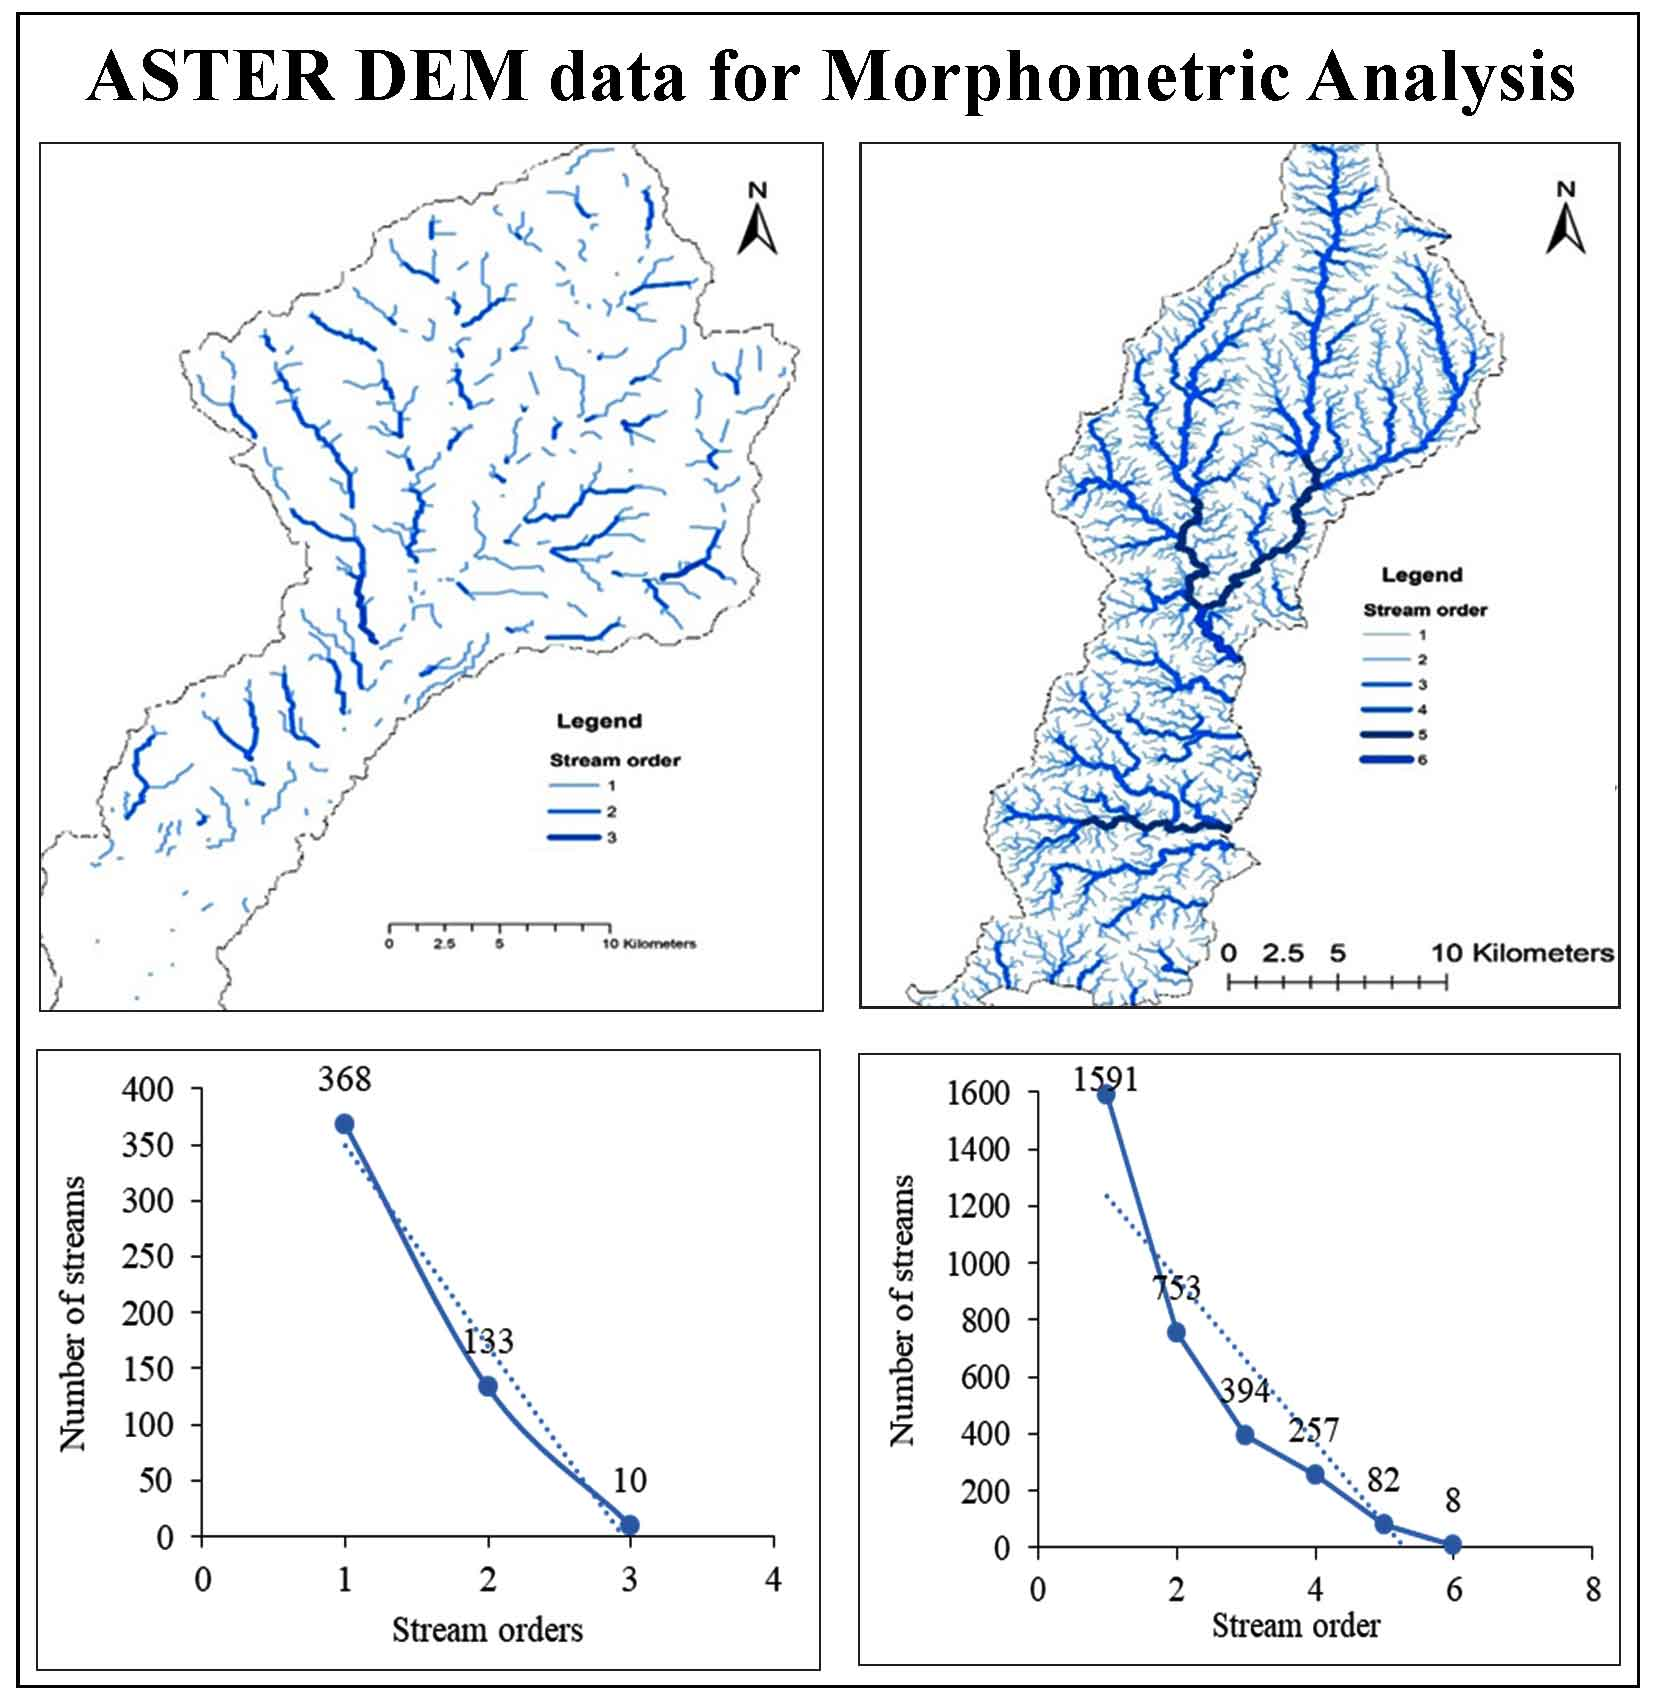 Use of ASTER DEM data for Morphometric Analysis of Megech-Dirma Watersheds, Blue Nile Basin, Ethiopia: Implications for Soil and Water Conservation